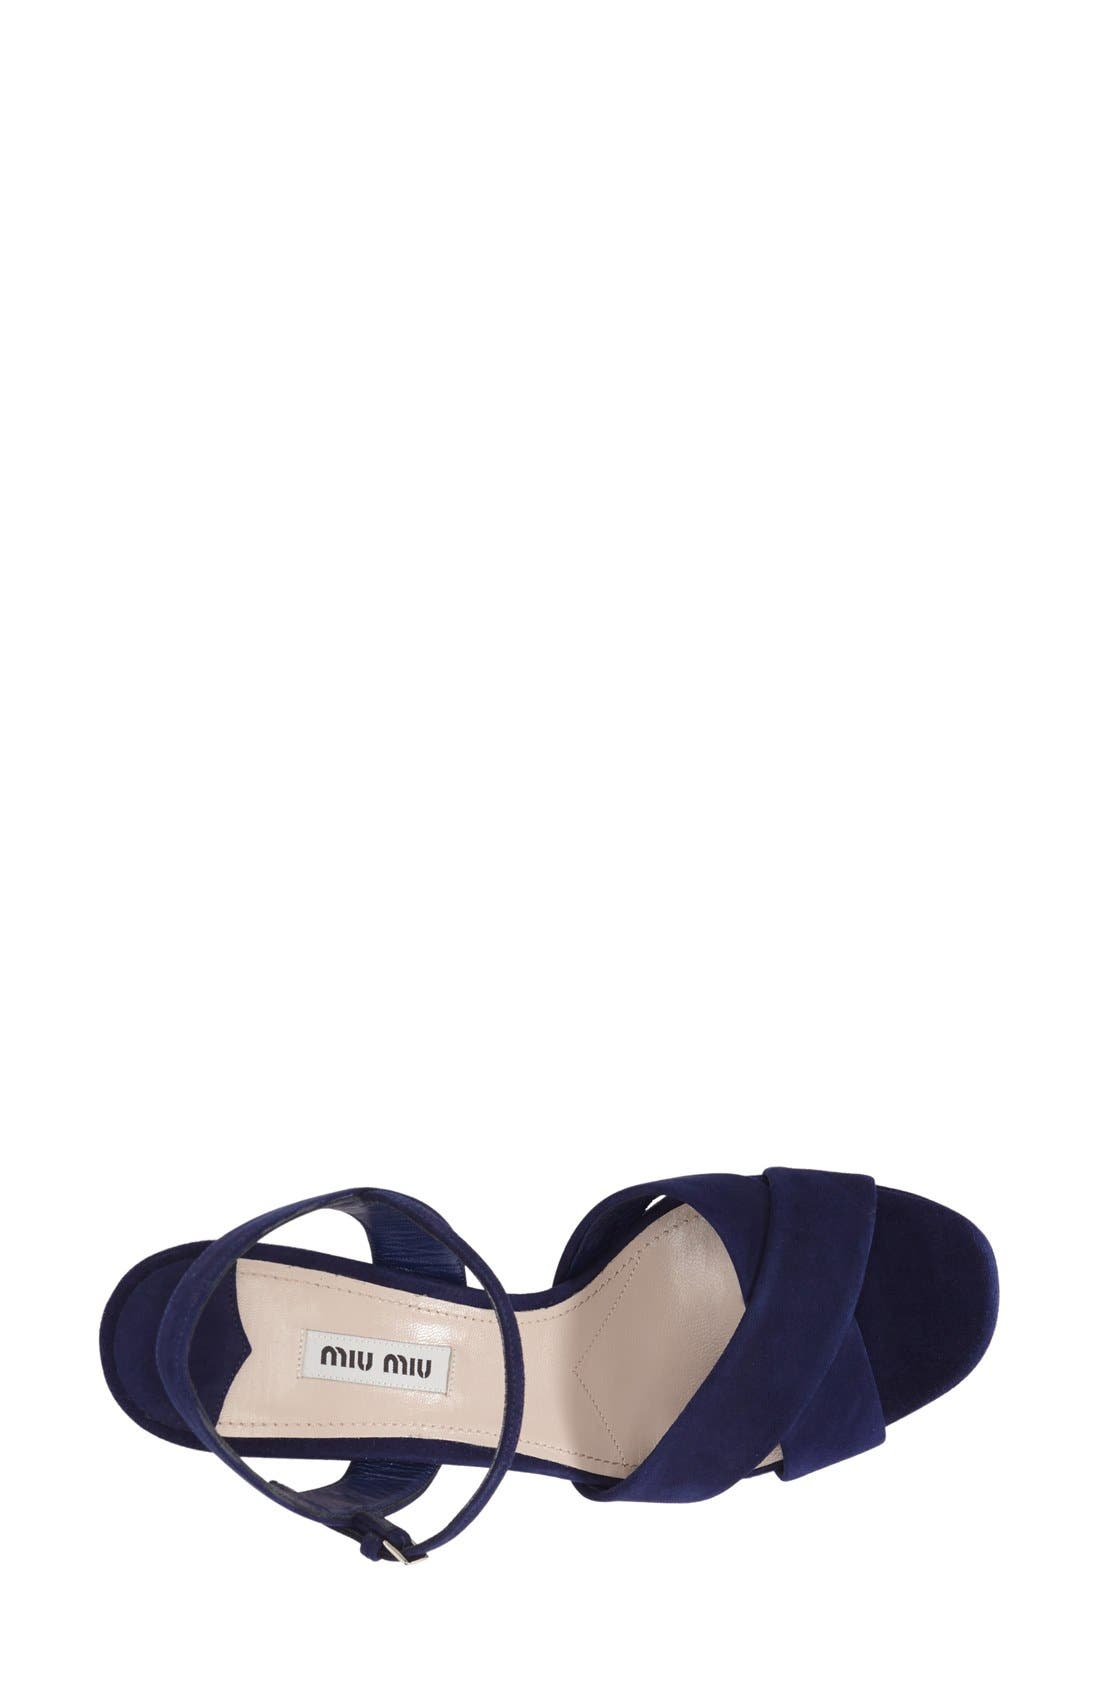 Alternate Image 3  - Miu Miu Platform Sandal (Women)